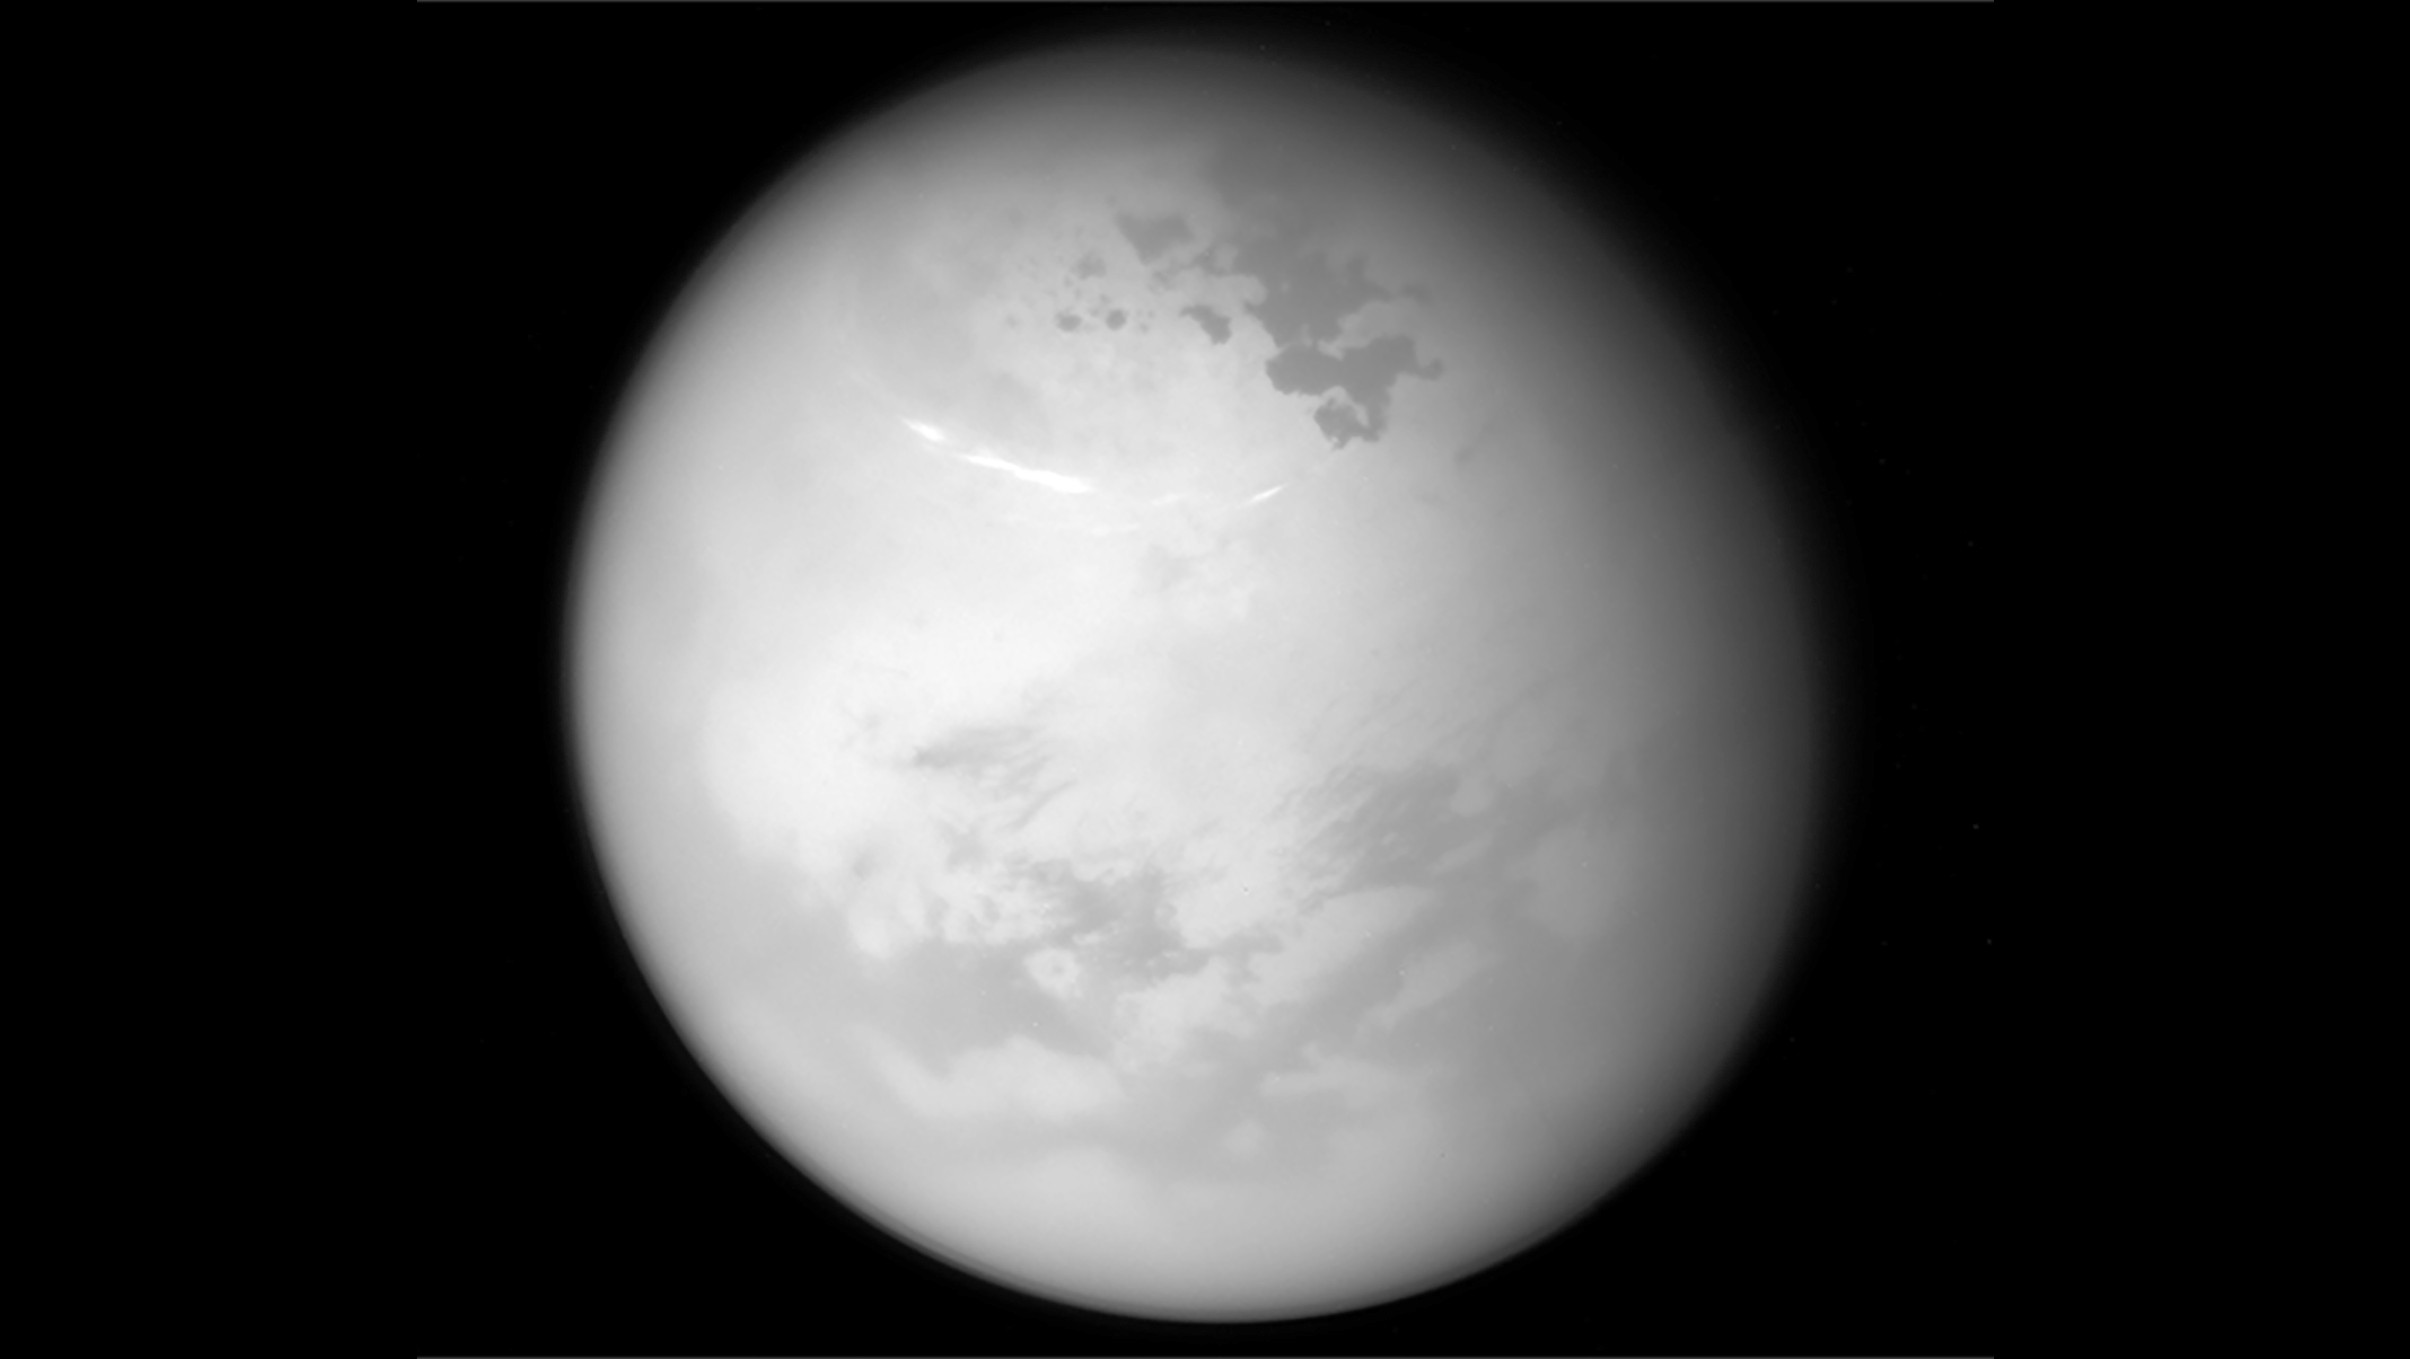 Methane clouds drift across Titan's summer skies in this Cassini image. The darker patches are hydrocarbon lakes.Credit: NASA/JPL-Caltech/Space Science Institute